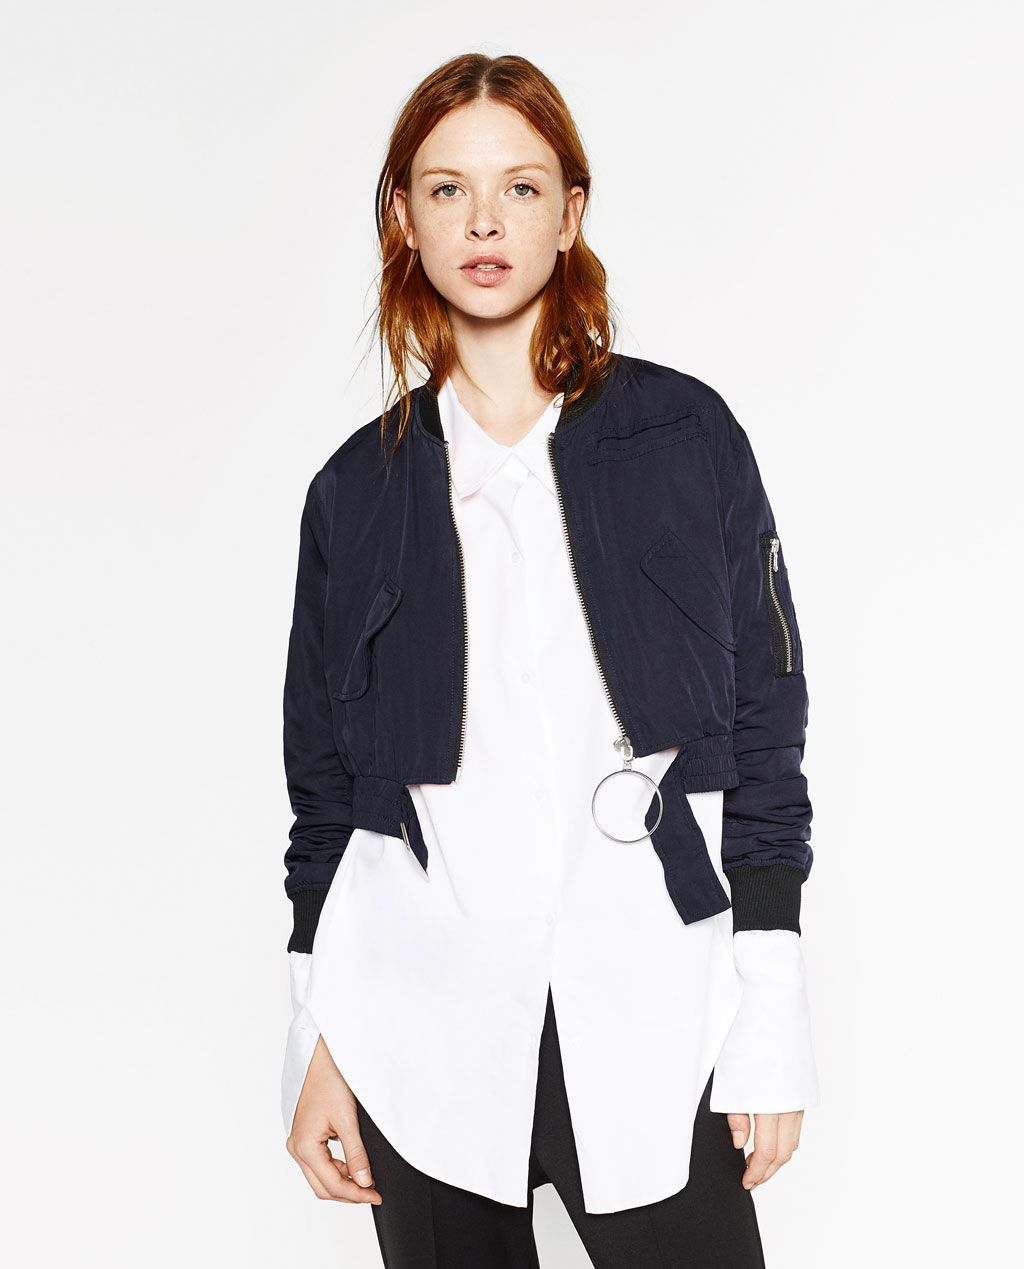 c09fdd8896cd5 CROPPED BOMBER JACKET-Bombers-OUTERWEAR-WOMAN